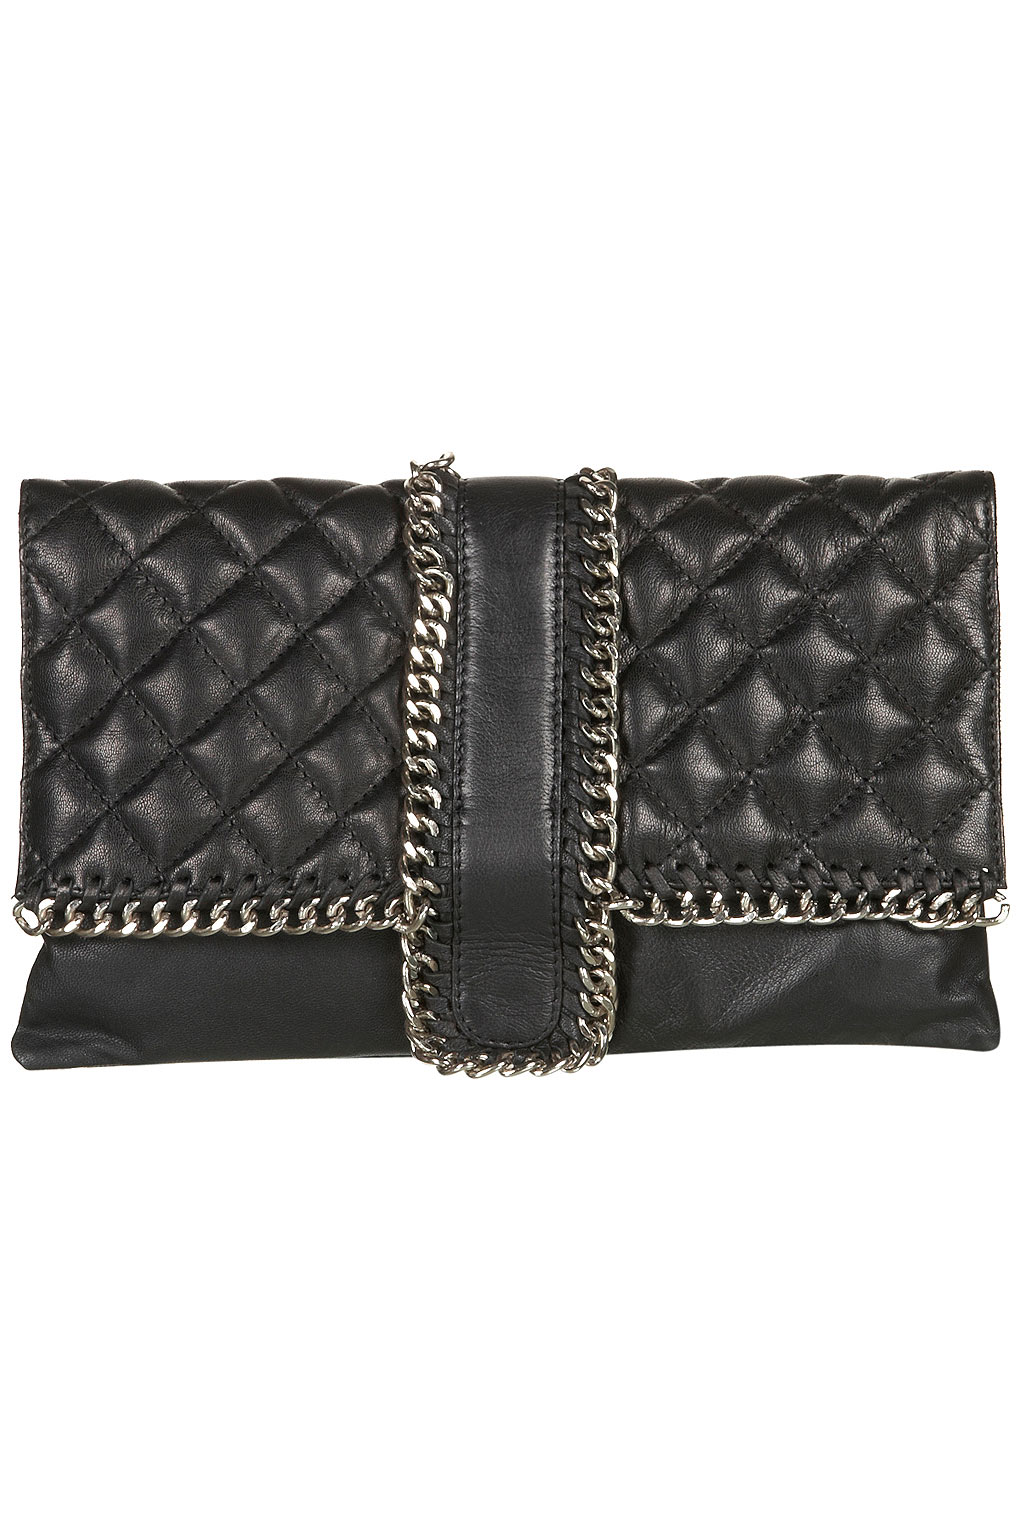 Topshop Leather Quilted Chain Clutch Bag In Black Lyst